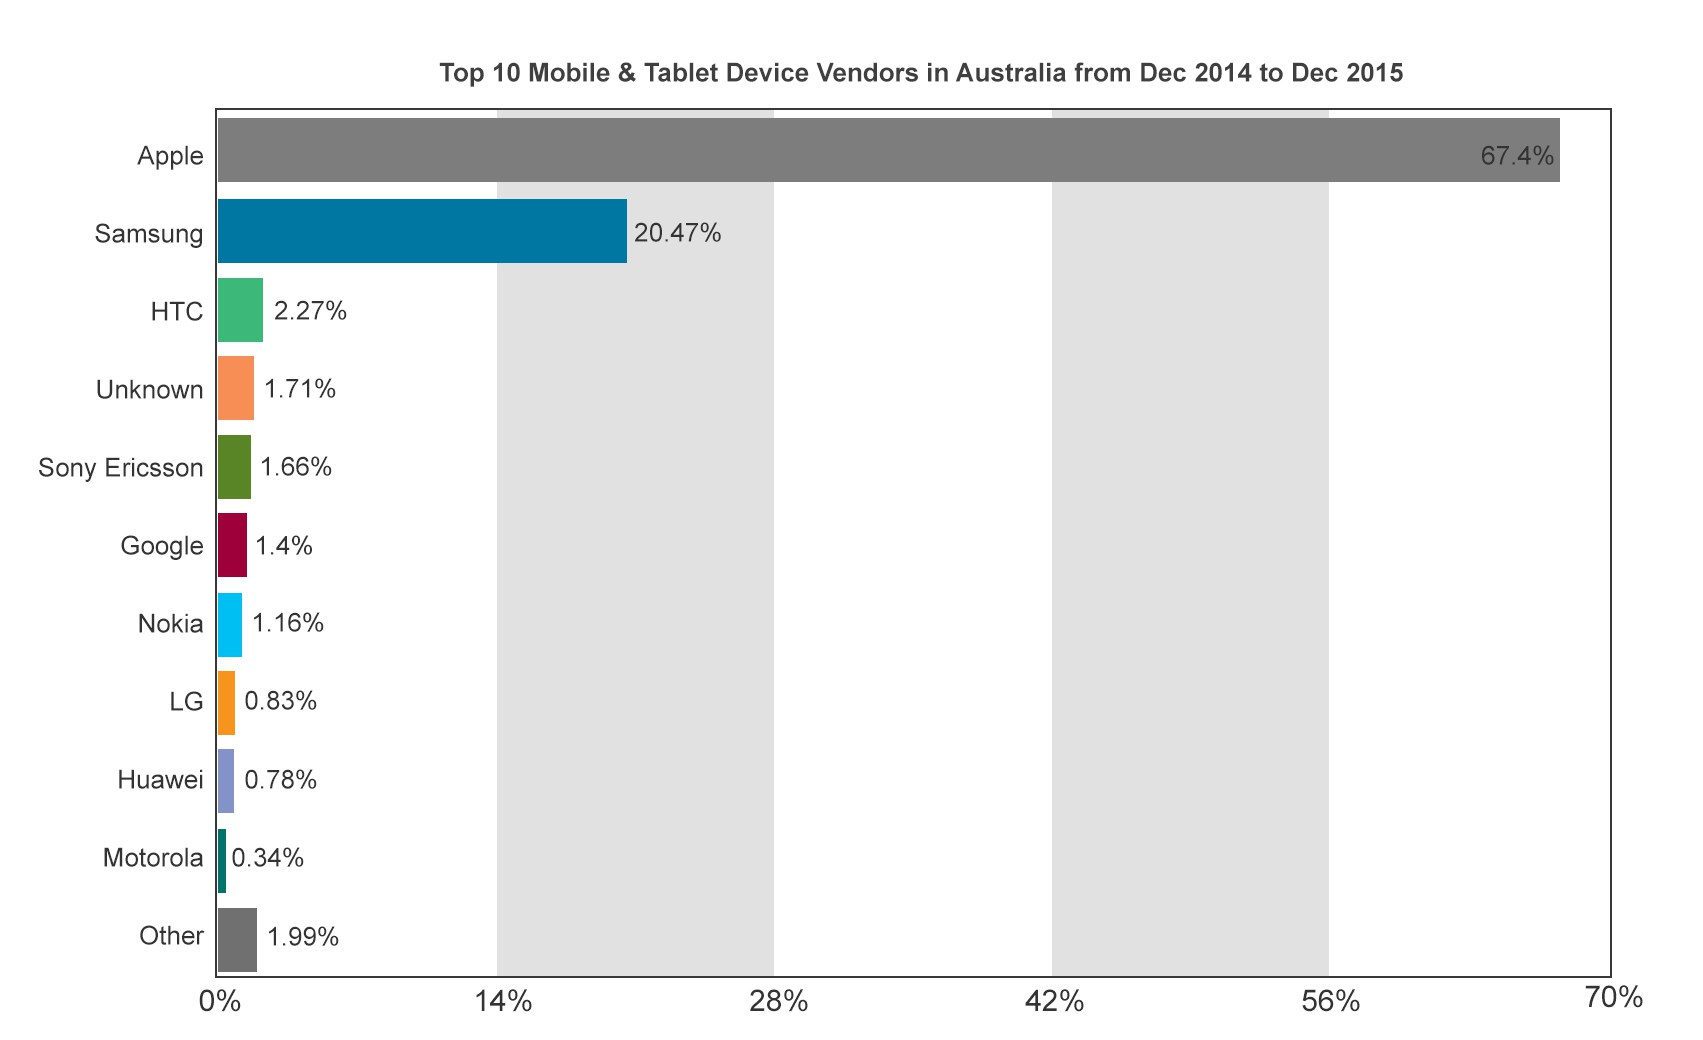 Top Device Vendors in Australia in 2015